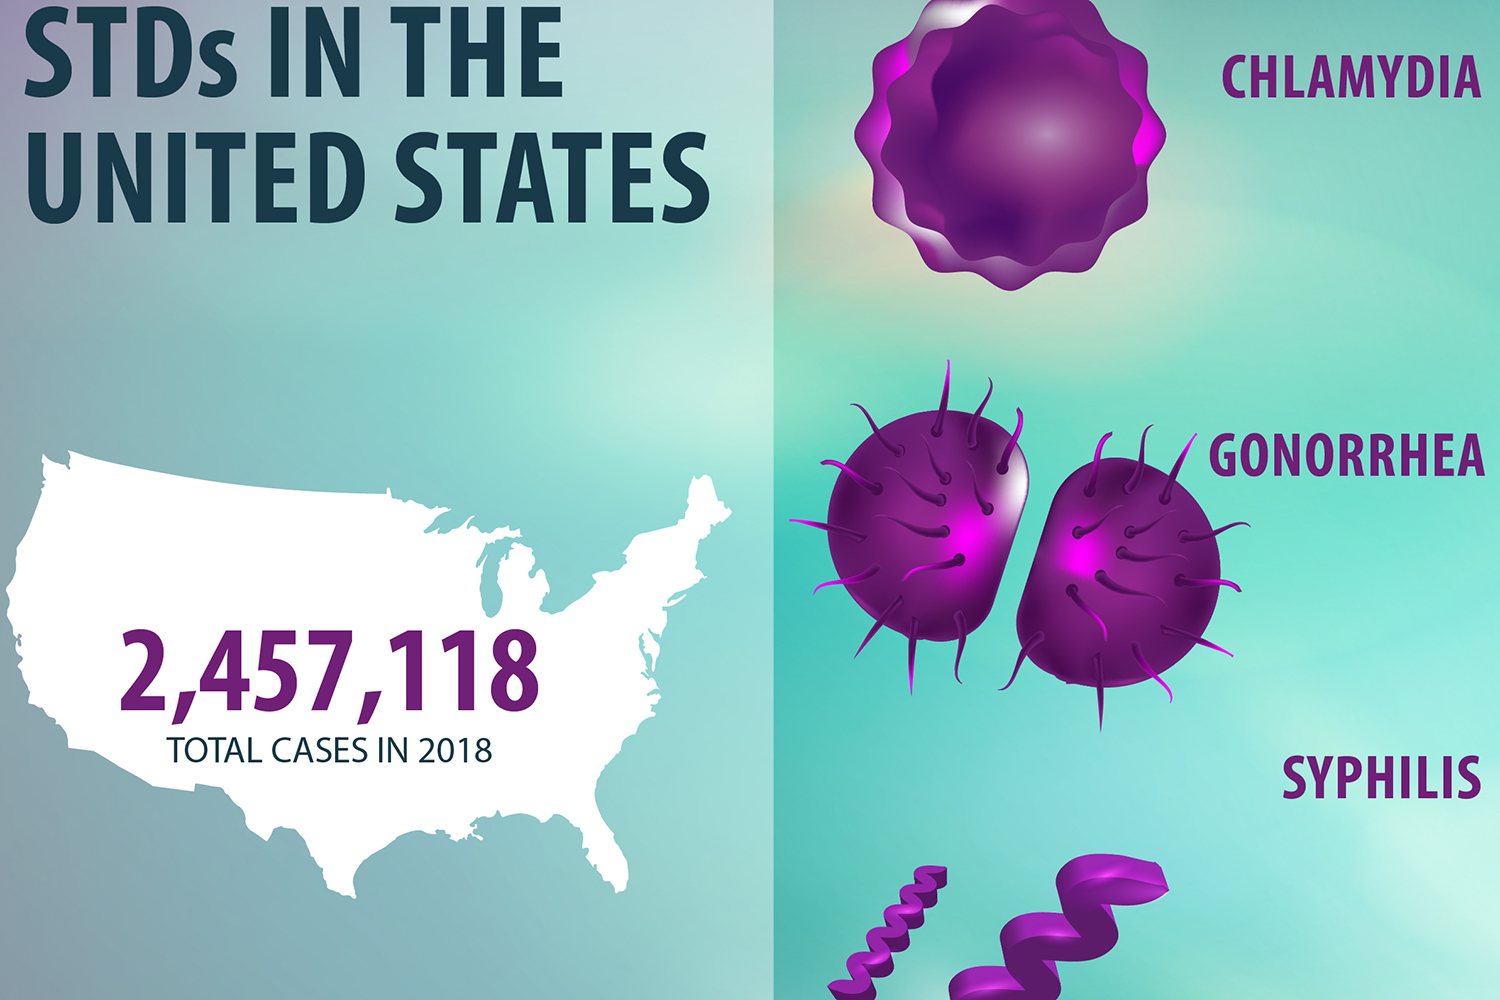 Each year, there are an estimated 376 million new infections with 1 of 4 STIs: chlamydia, gonorrhoea, syphilis and trichomoniasis. Getting tested for STDs may save you from experiencing serious health problems in the future. Syphilis, gonorrhoea, chlamydia and trichomoniasis are currently the only ones that are curable.